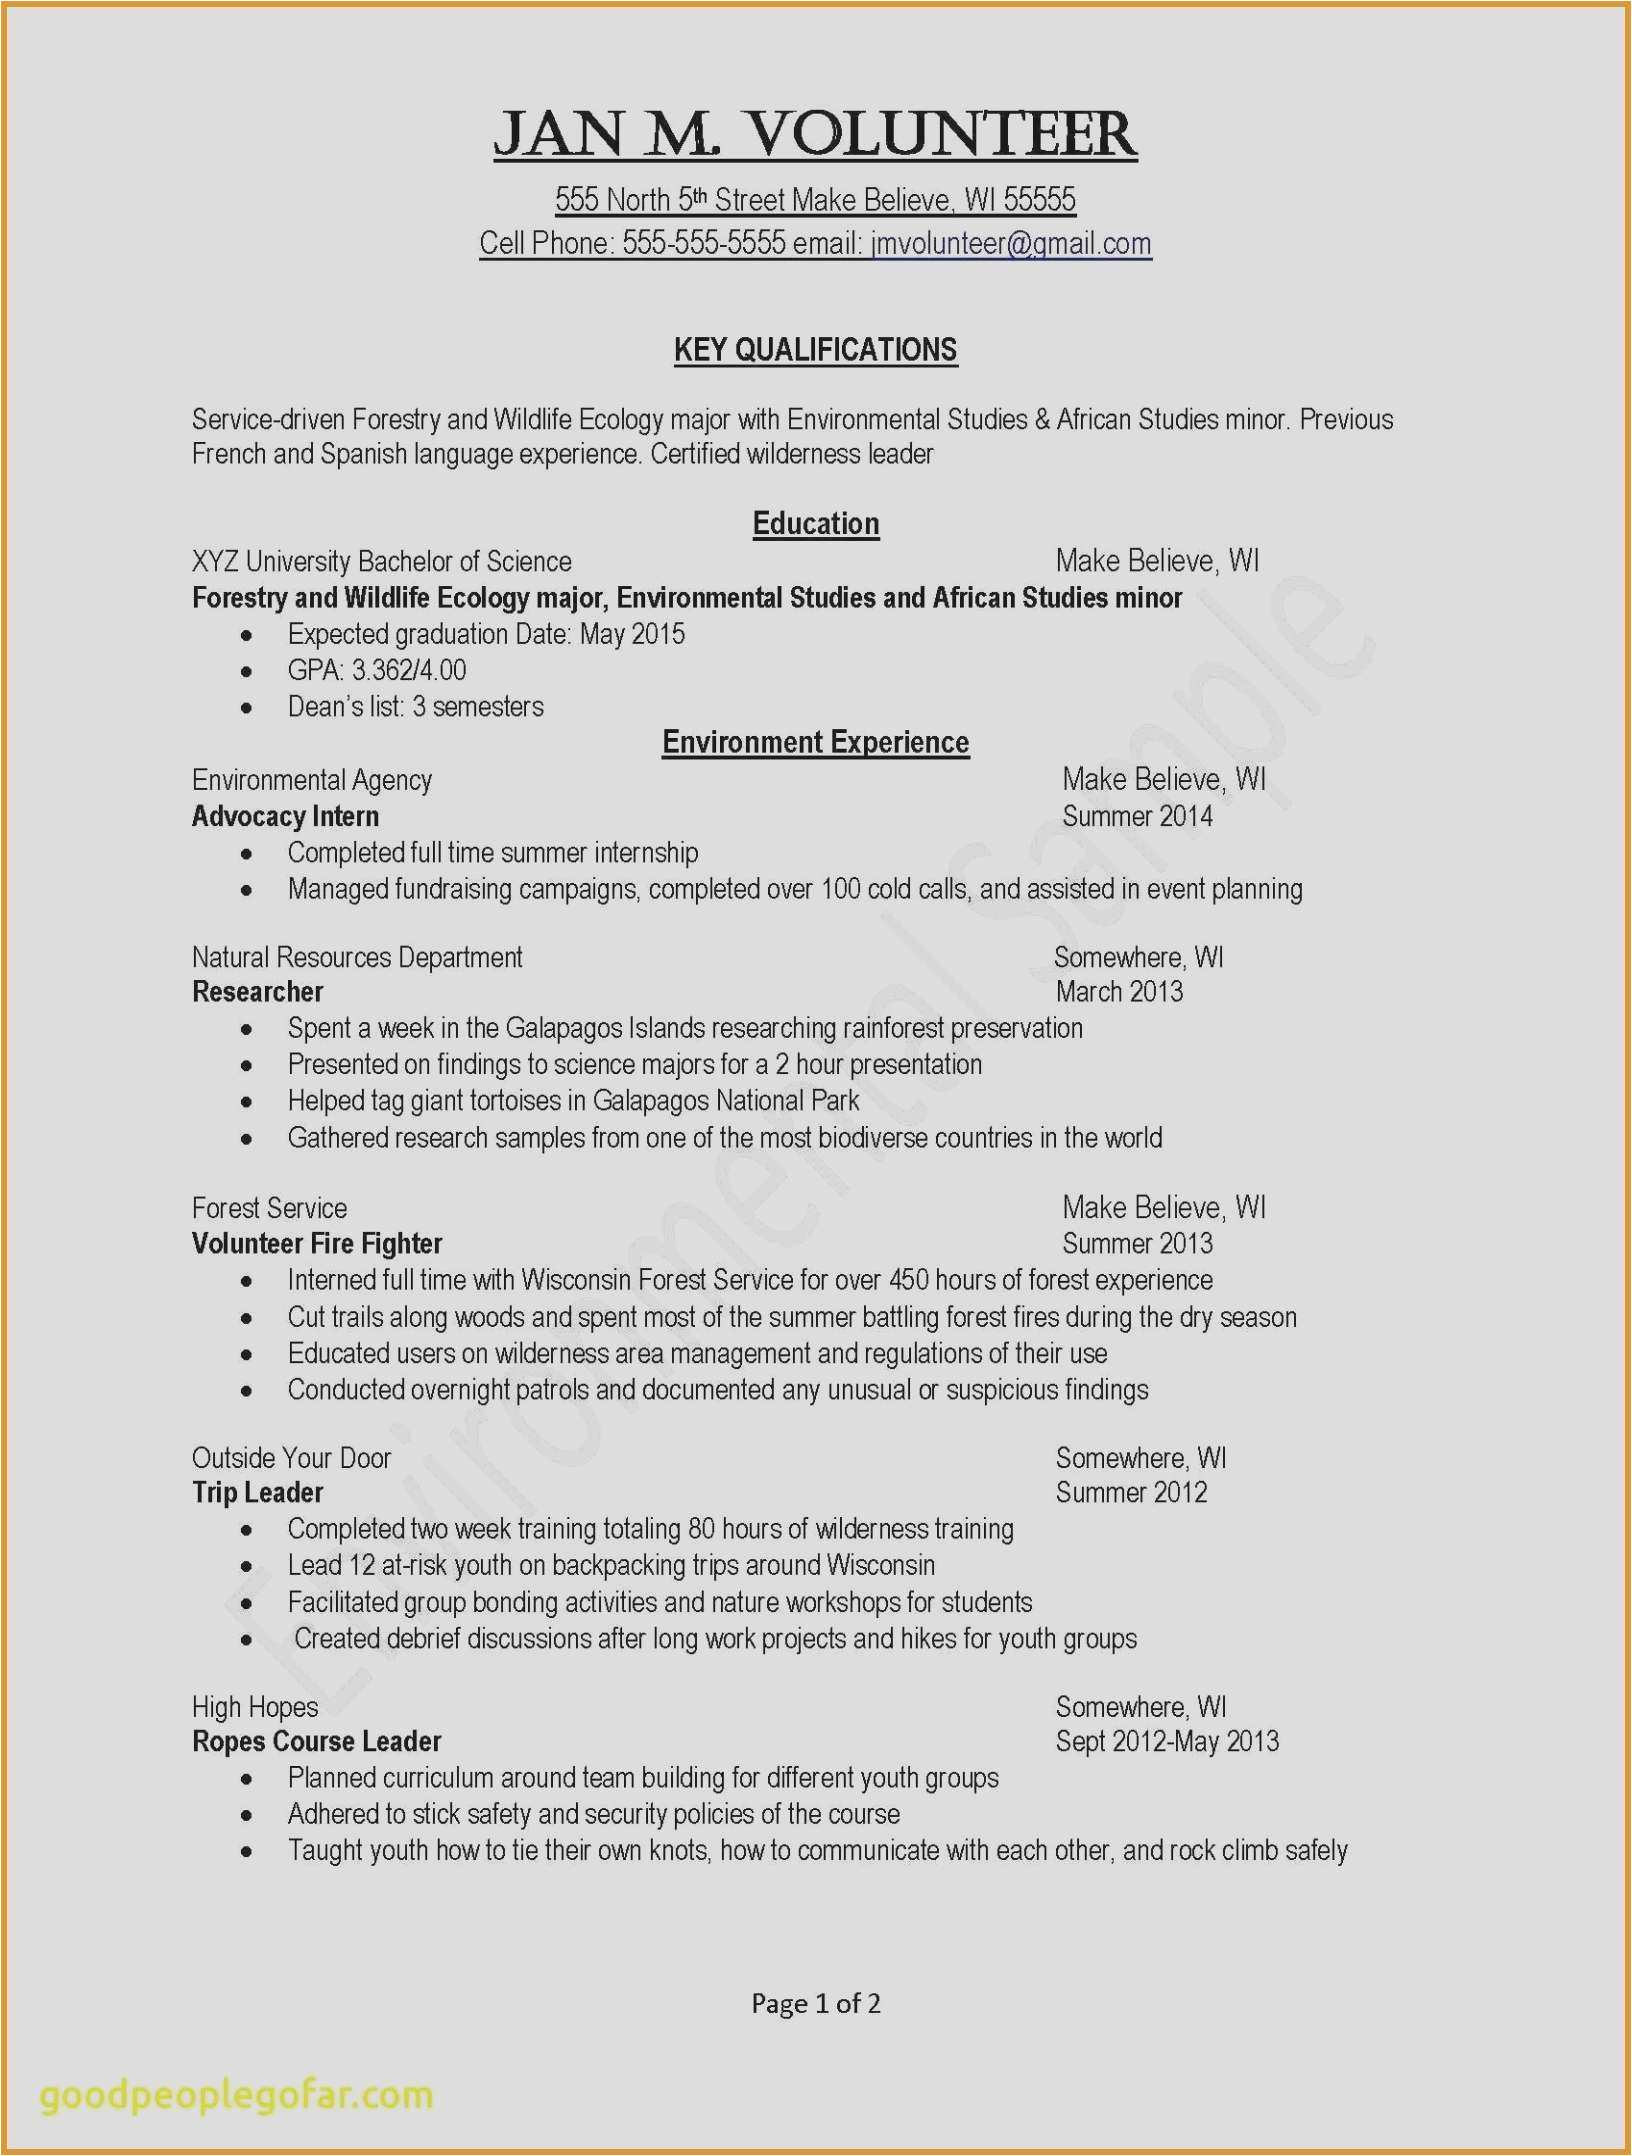 Create Your Own Resume - 21 A Resume is Sample